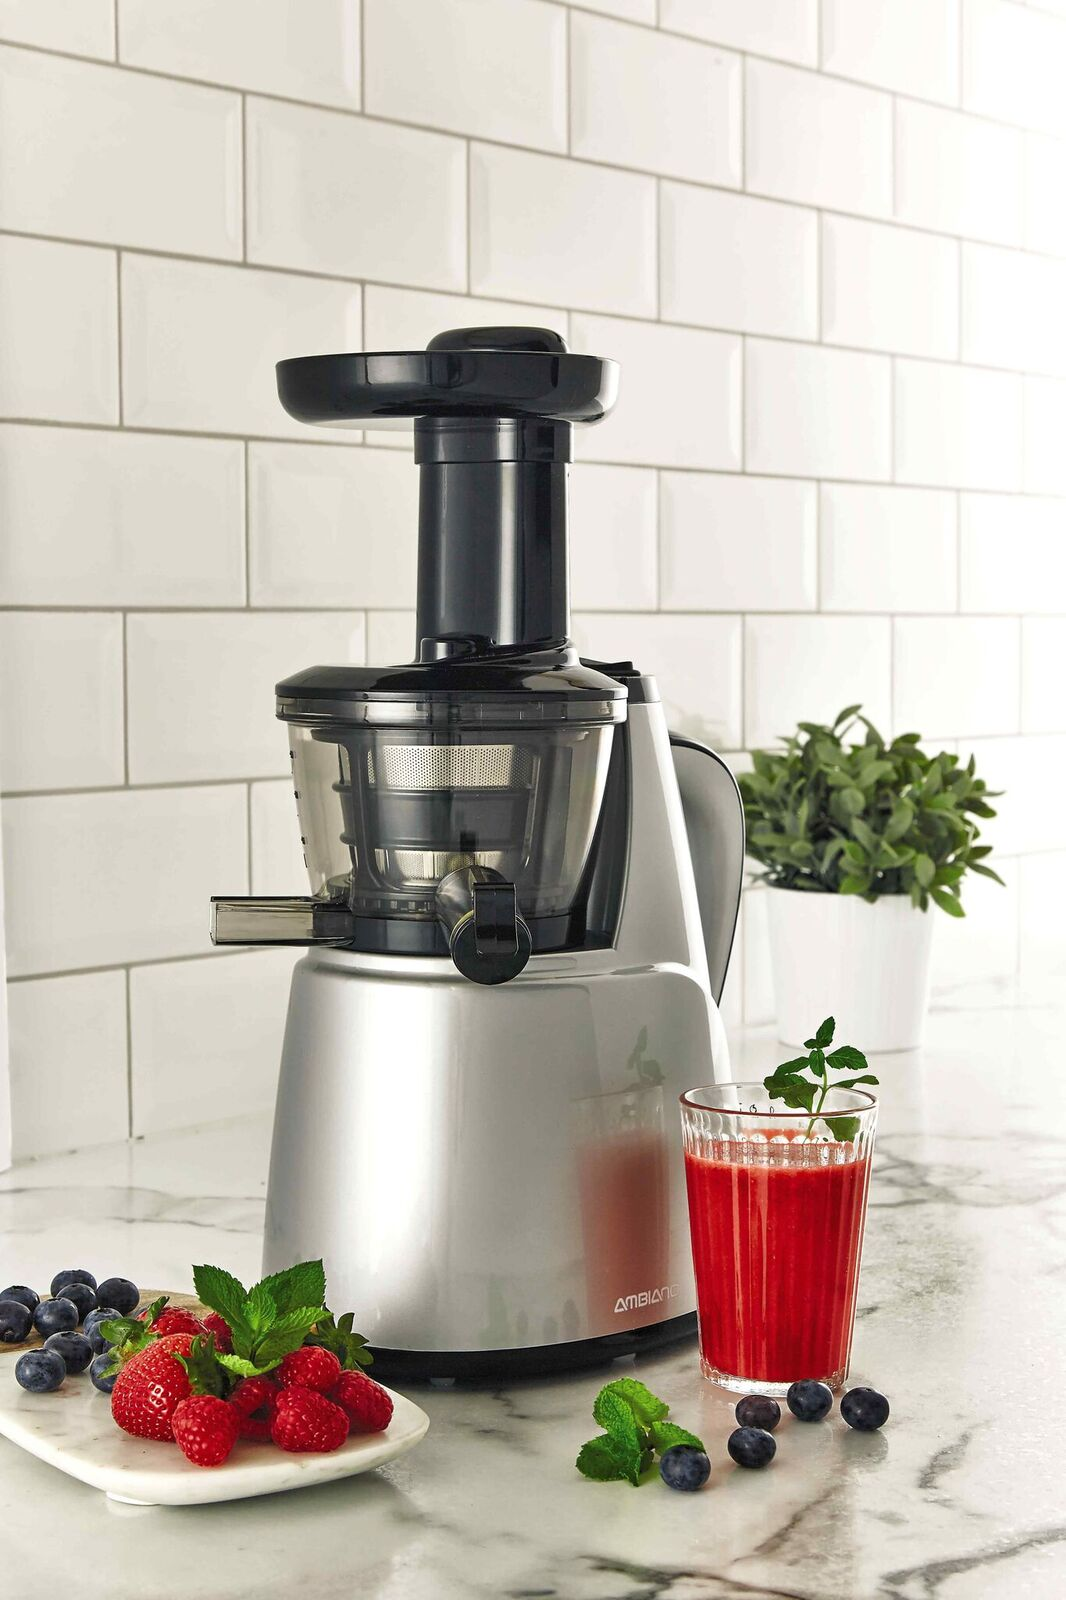 Ambiano Slow Juicer Erfahrungen : Aldi has some great household items coming soon Her.ie